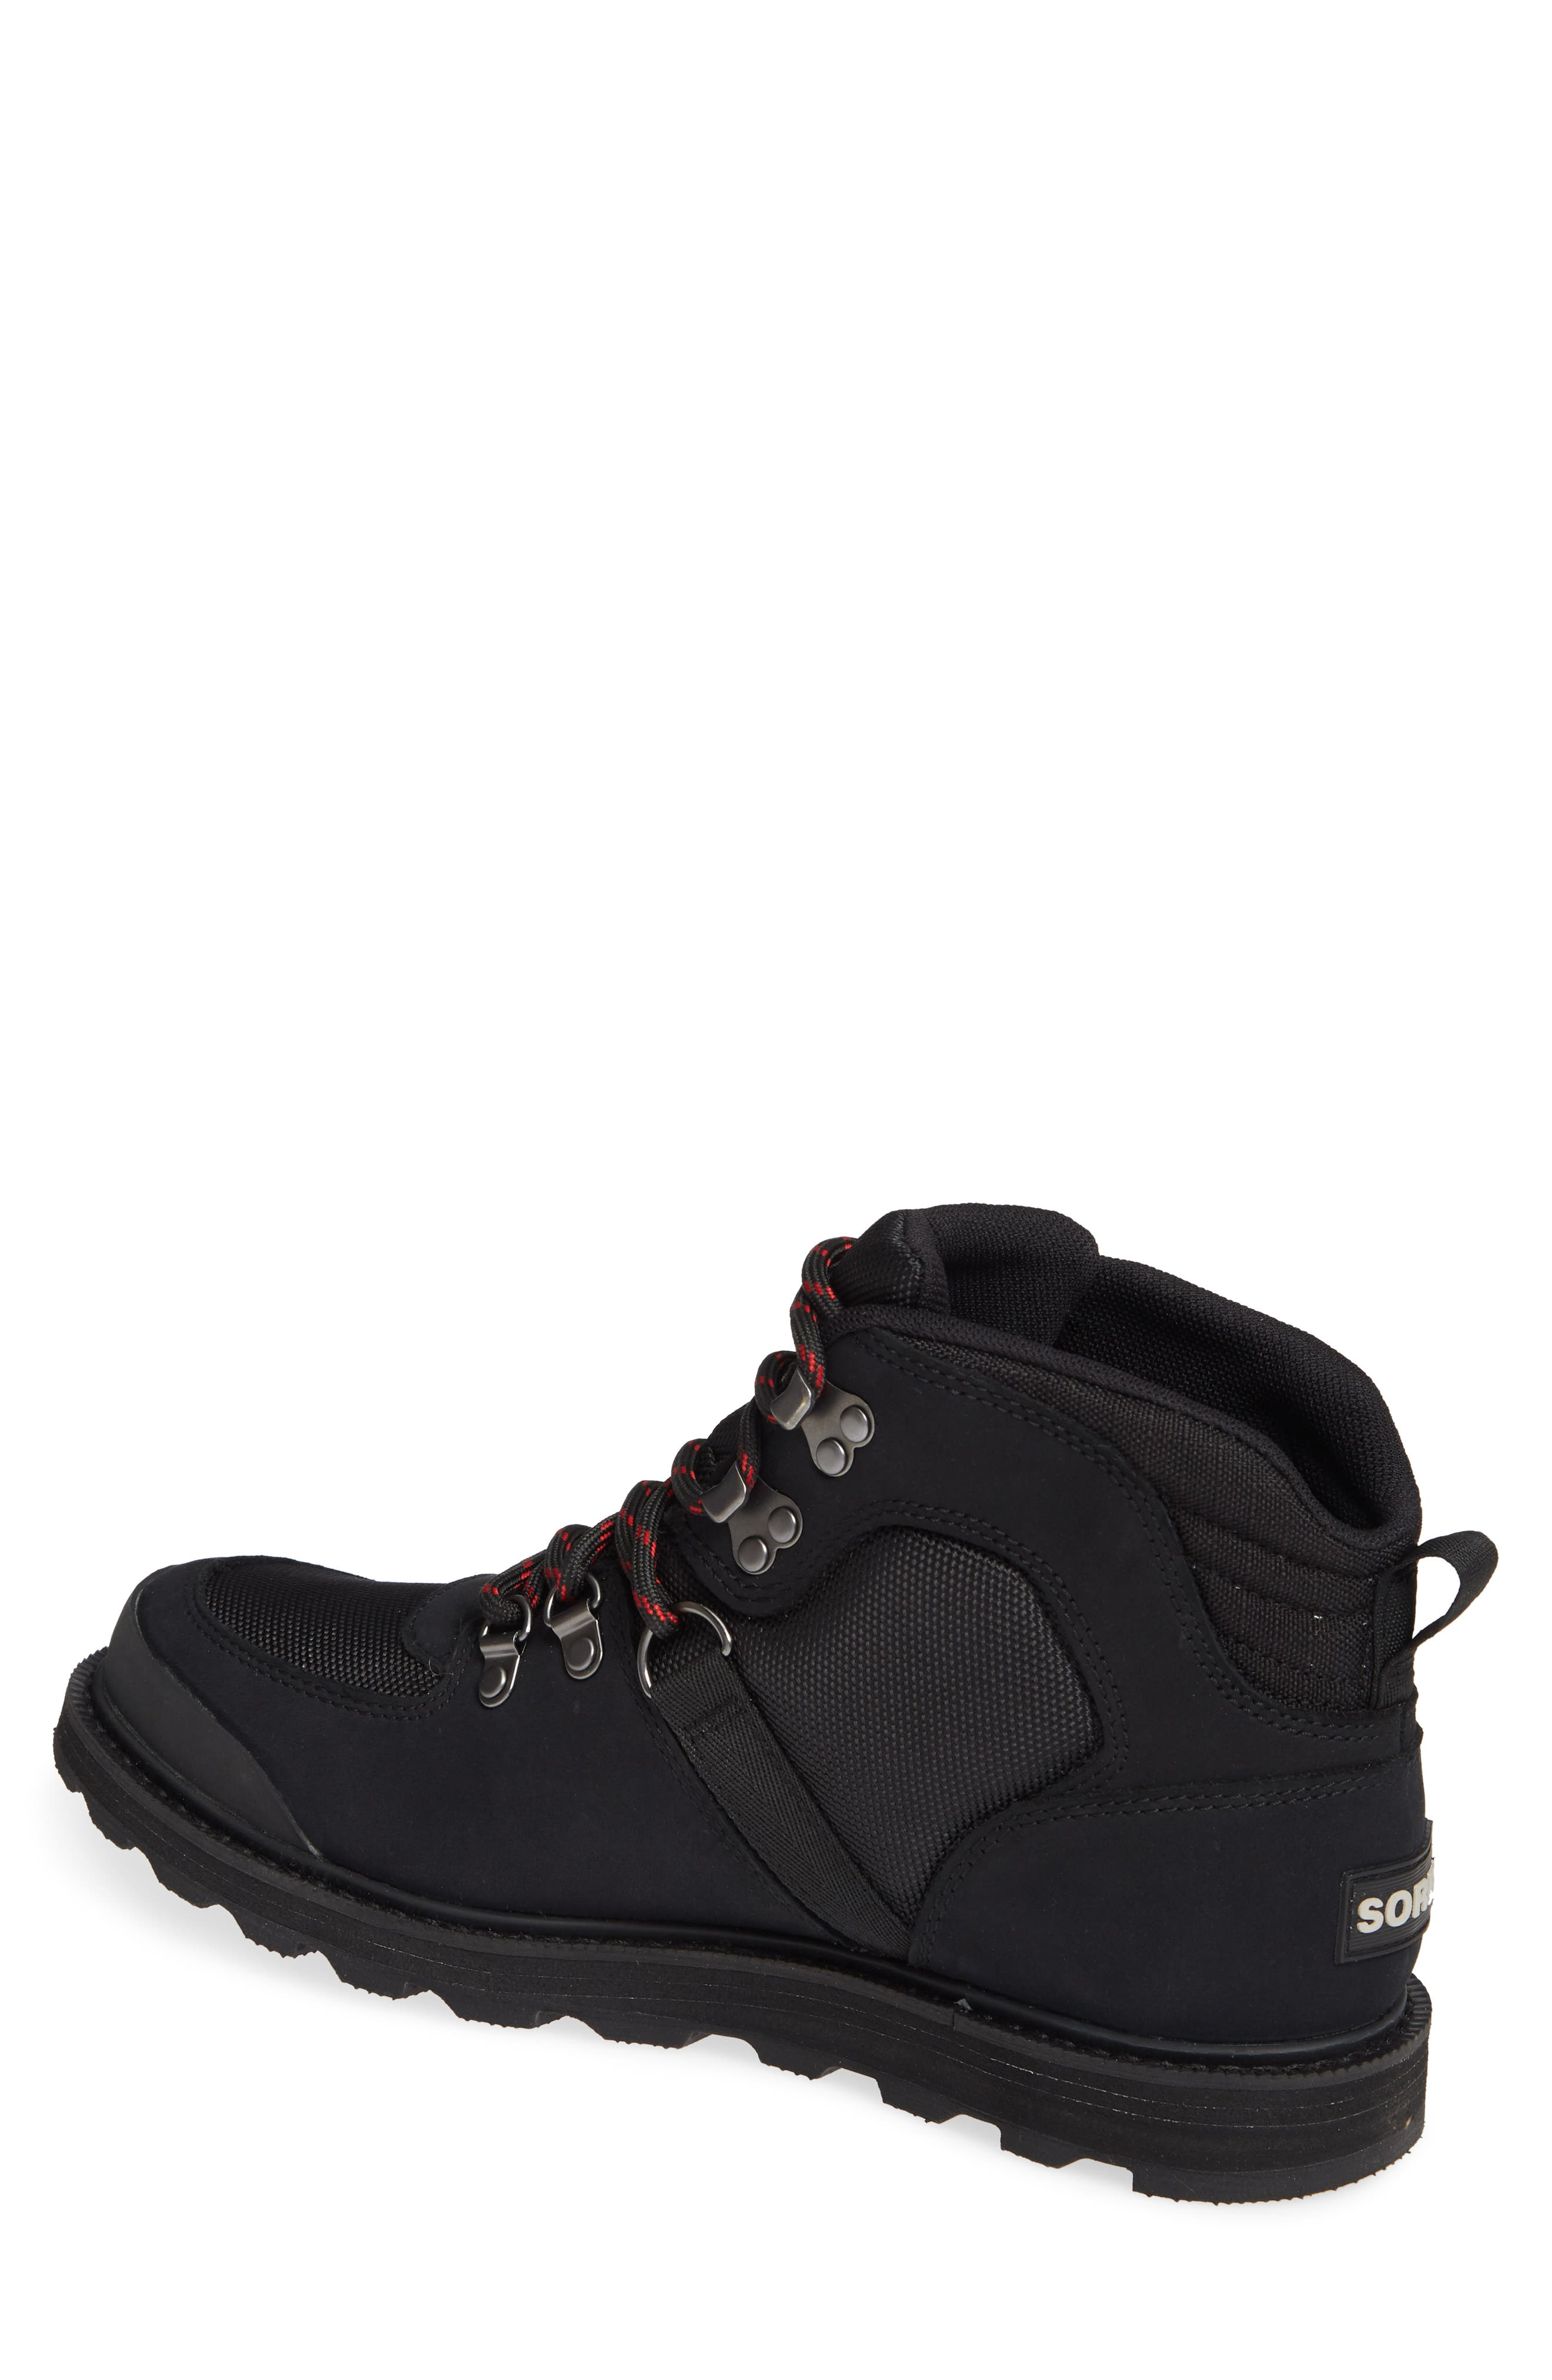 Madson Sport Waterproof Hiking Boot,                             Alternate thumbnail 2, color,                             BLACK